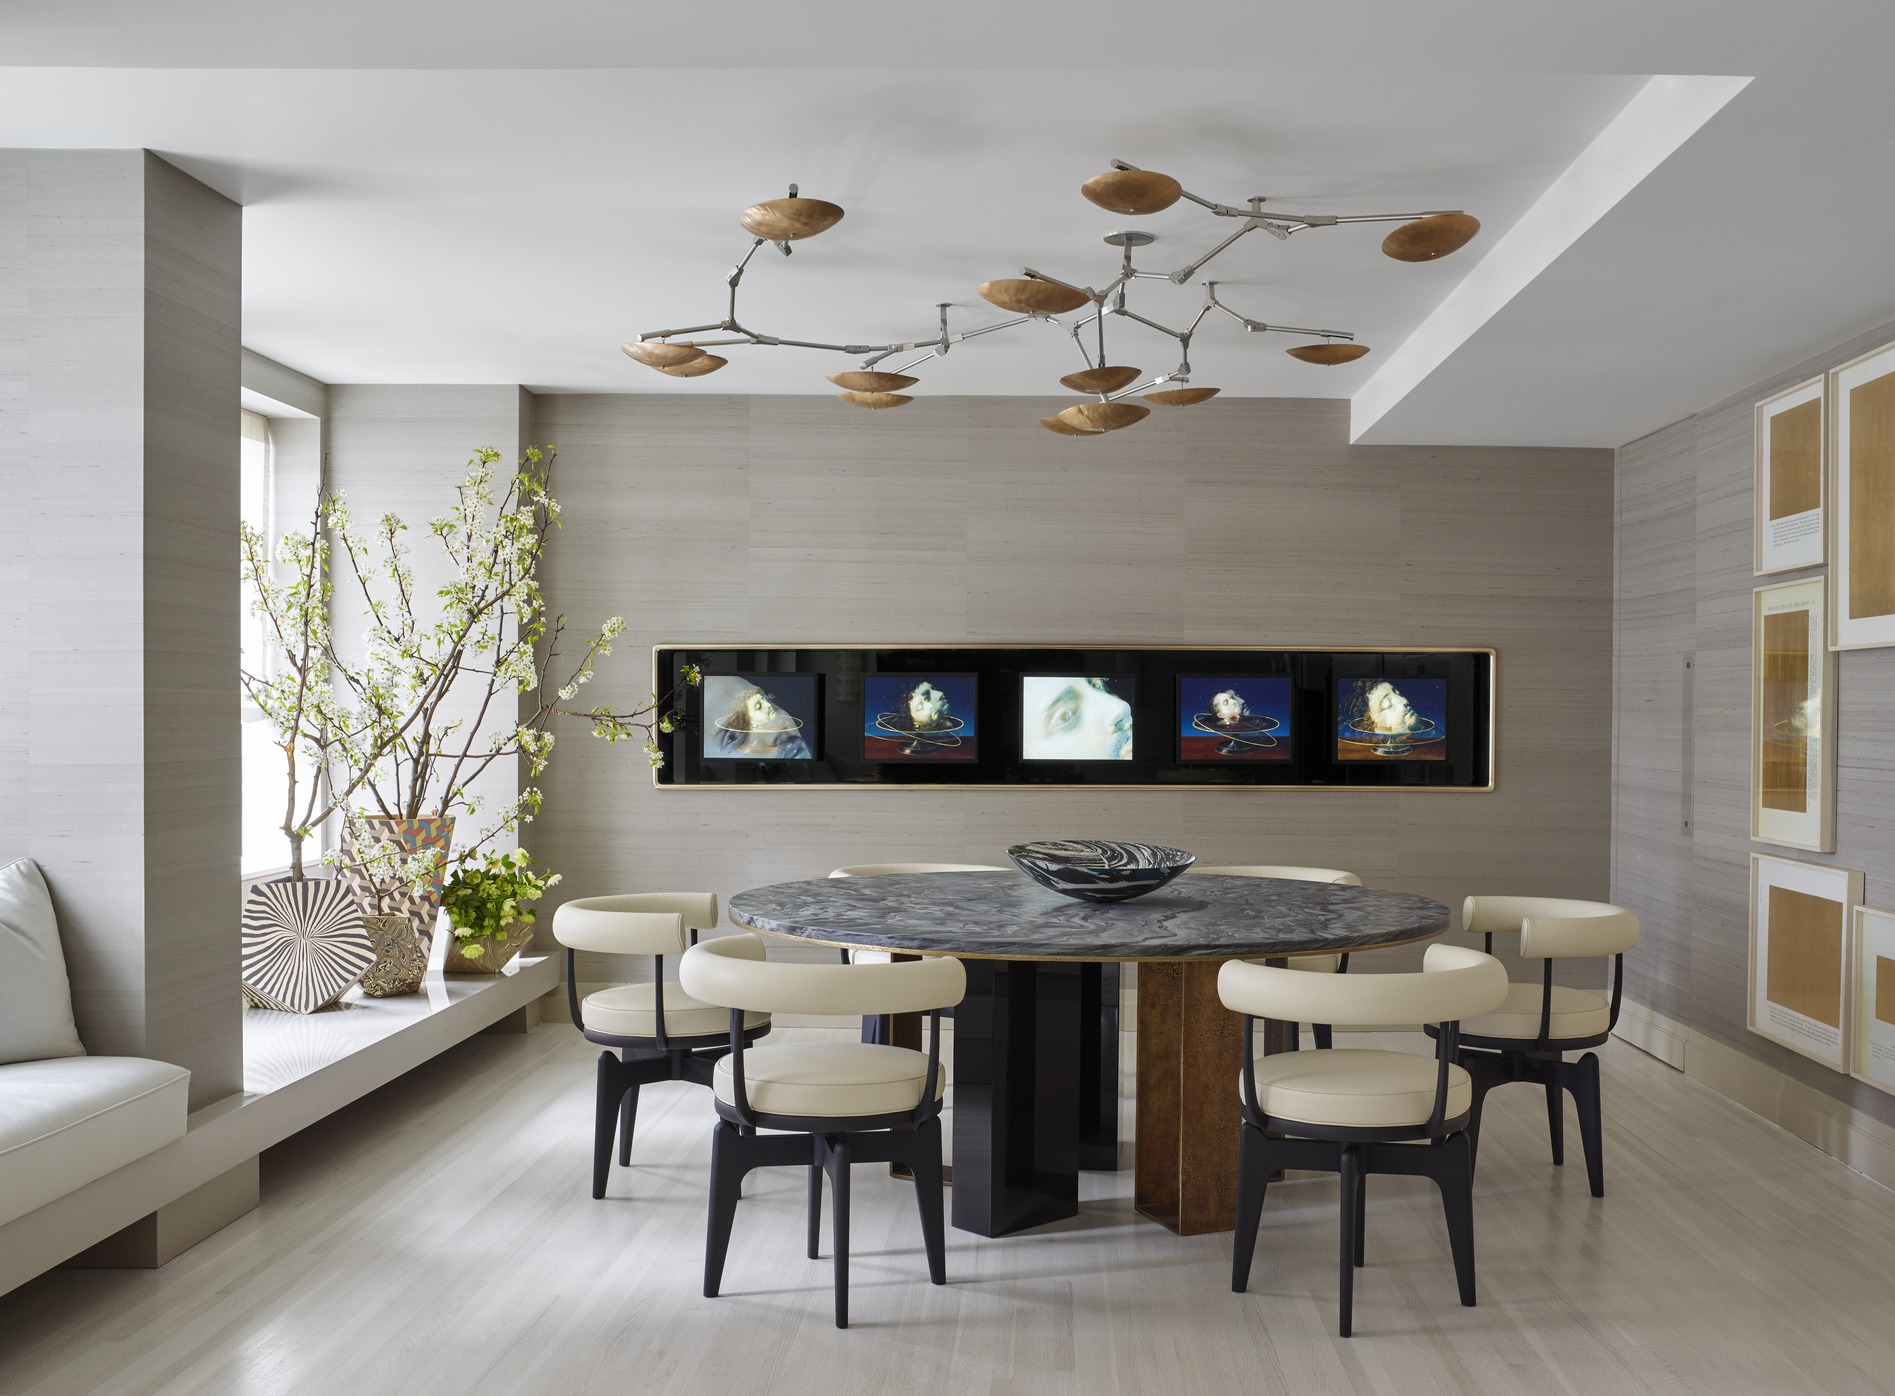 Formal Dining Room Ideas How to Choose the Best Wall  : Unusual Ceiling Lamp Decorating Futuristic Dining Room Ideas with Round Marble Top Table and Modern Chairs from midcityeast.com size 1895 x 1396 jpeg 441kB